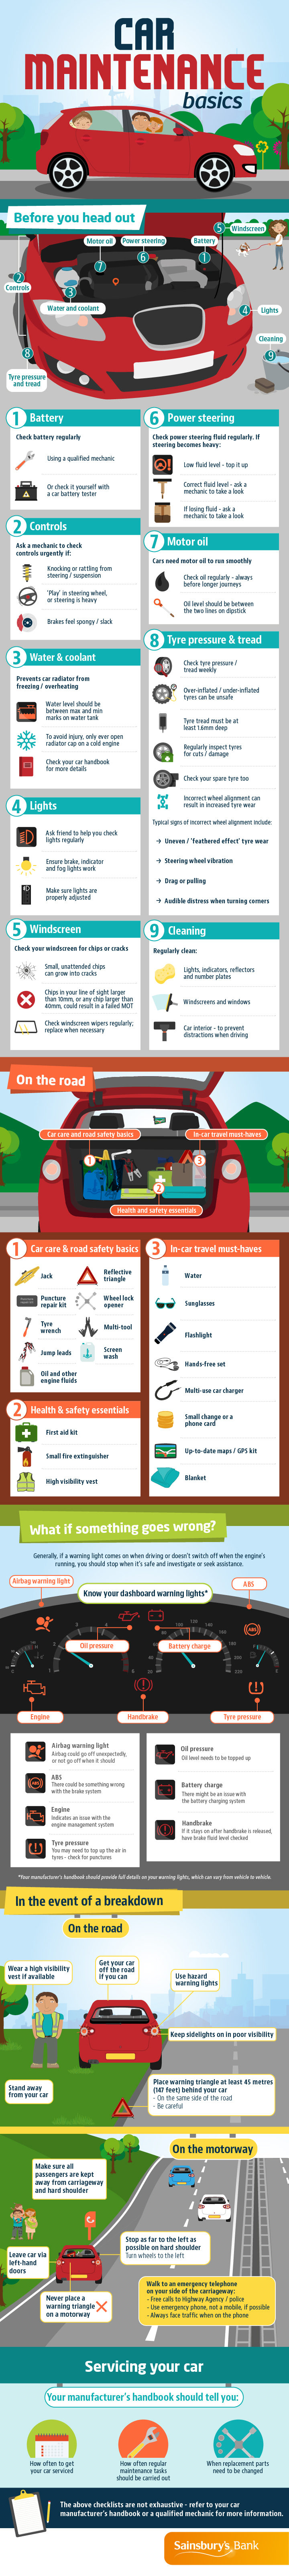 Redbourn Auto Solutions - Car Maintenance Infographic (1)